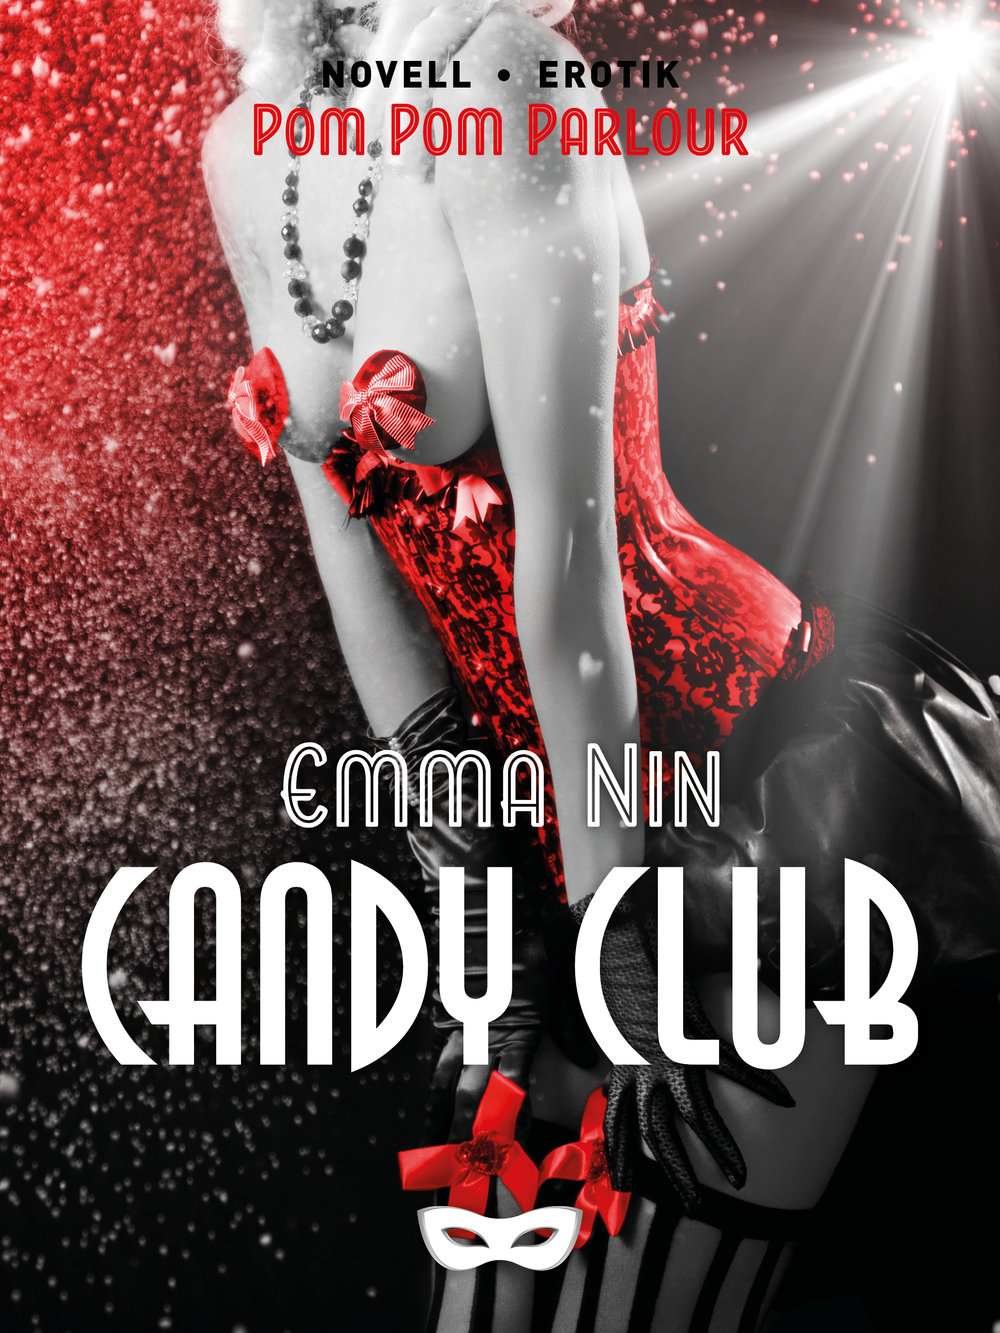 Candy club släpps 5 november